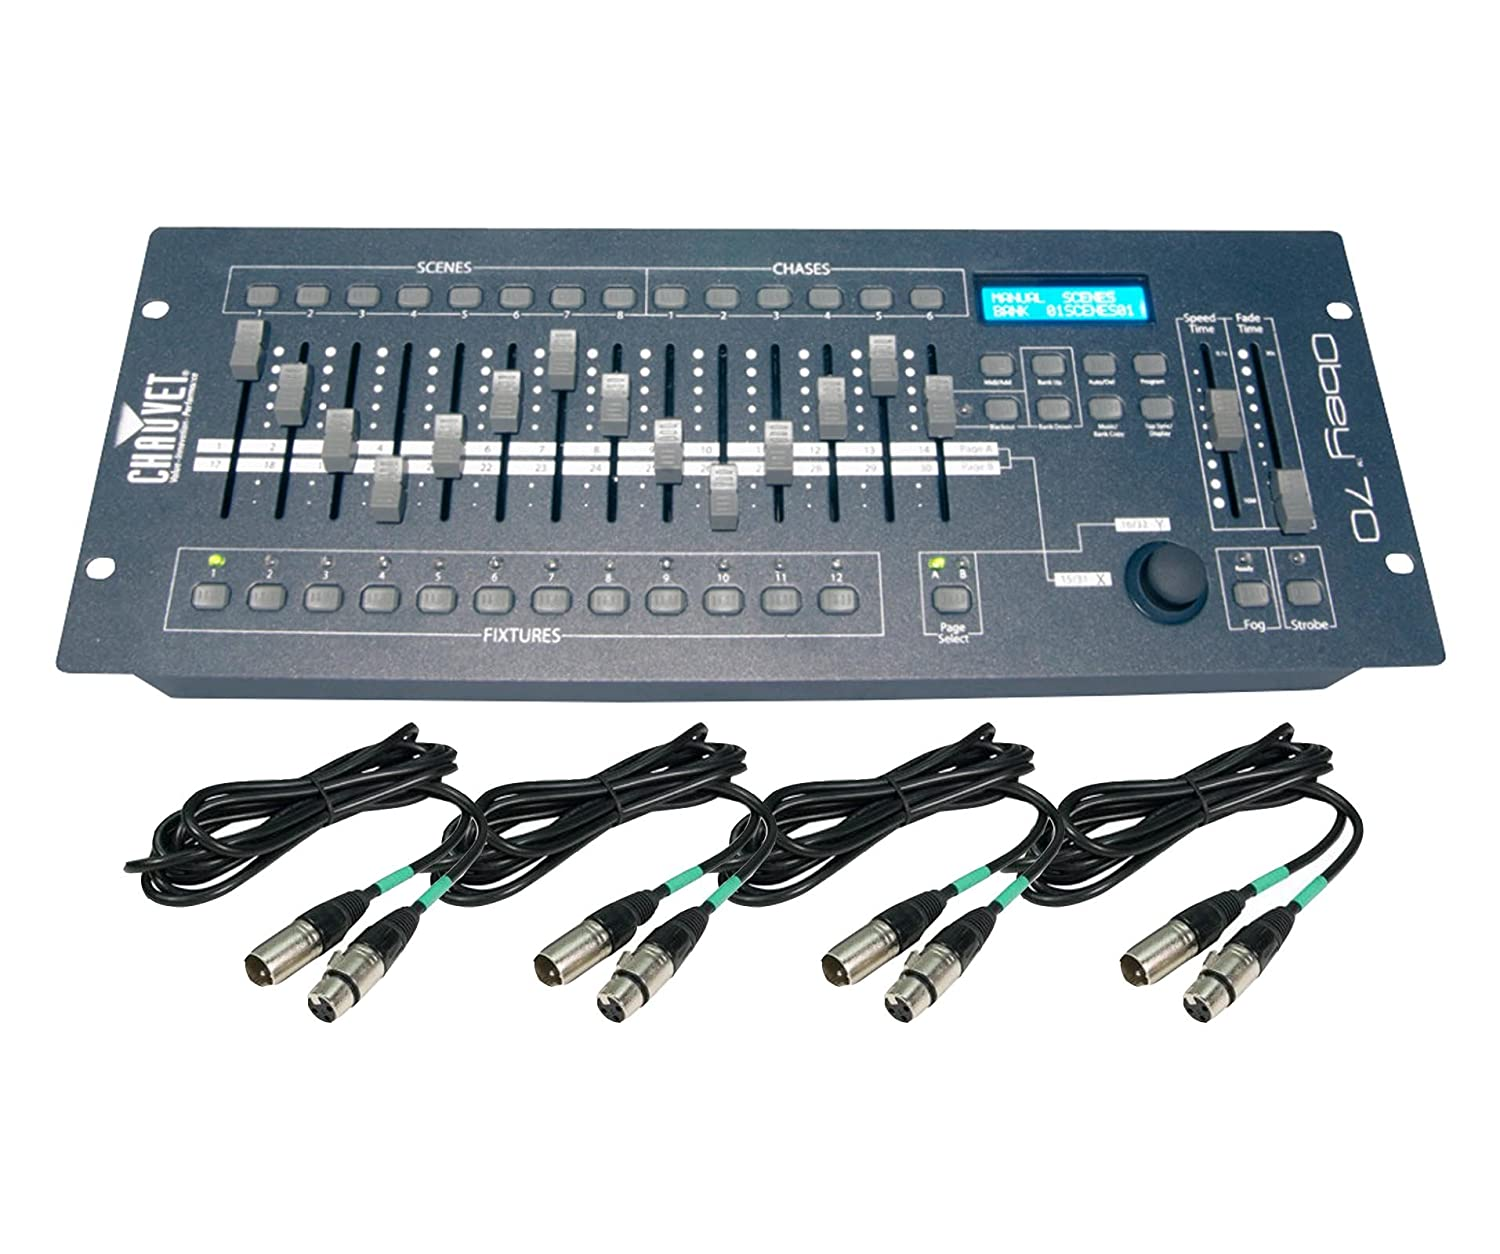 Amazon.com: Chauvet DJ OBEY70 Obey 70 Lighting & Fog DMX-512 Controller and  10' & 25' Cables: Musical Instruments